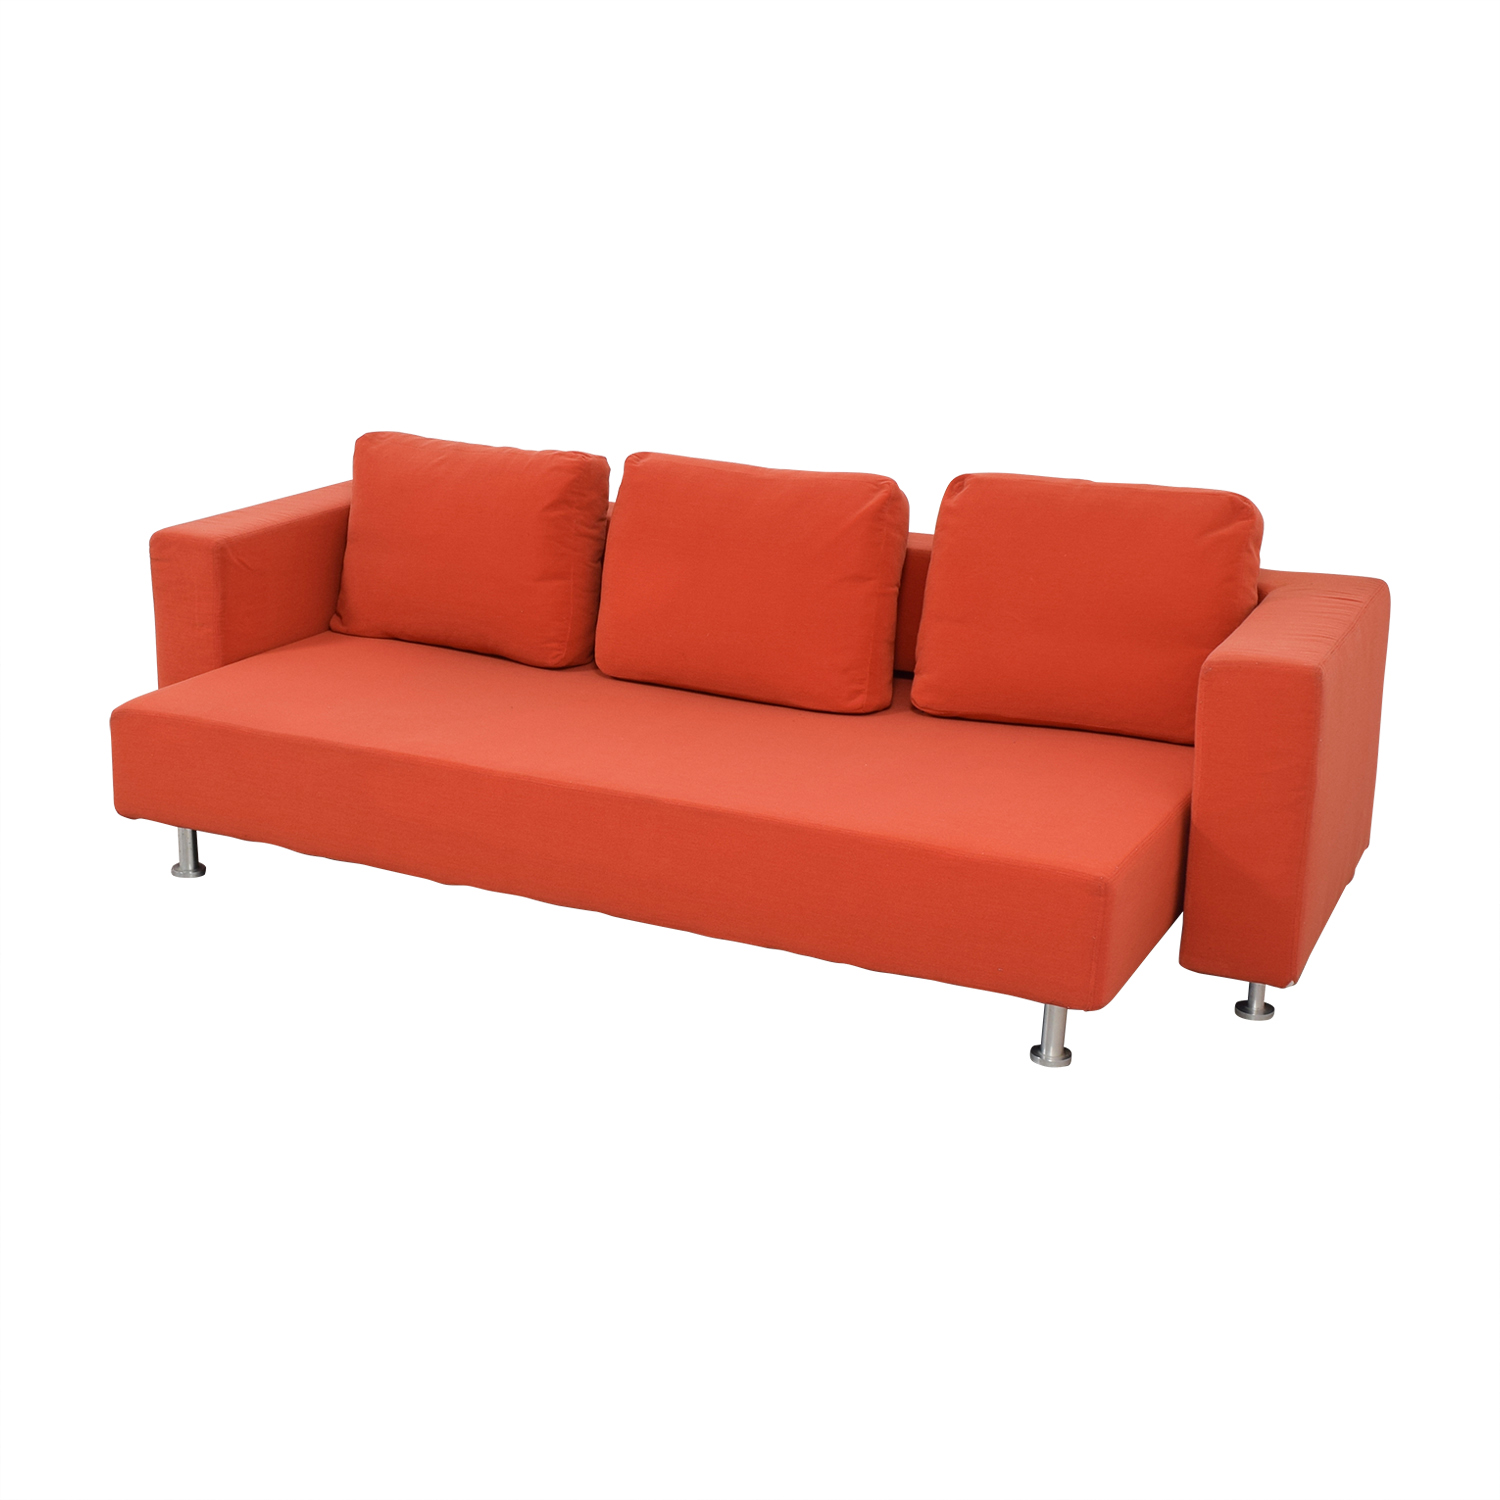 Ligne Roset Ligne Roset Orange Sleeper Sofa orange